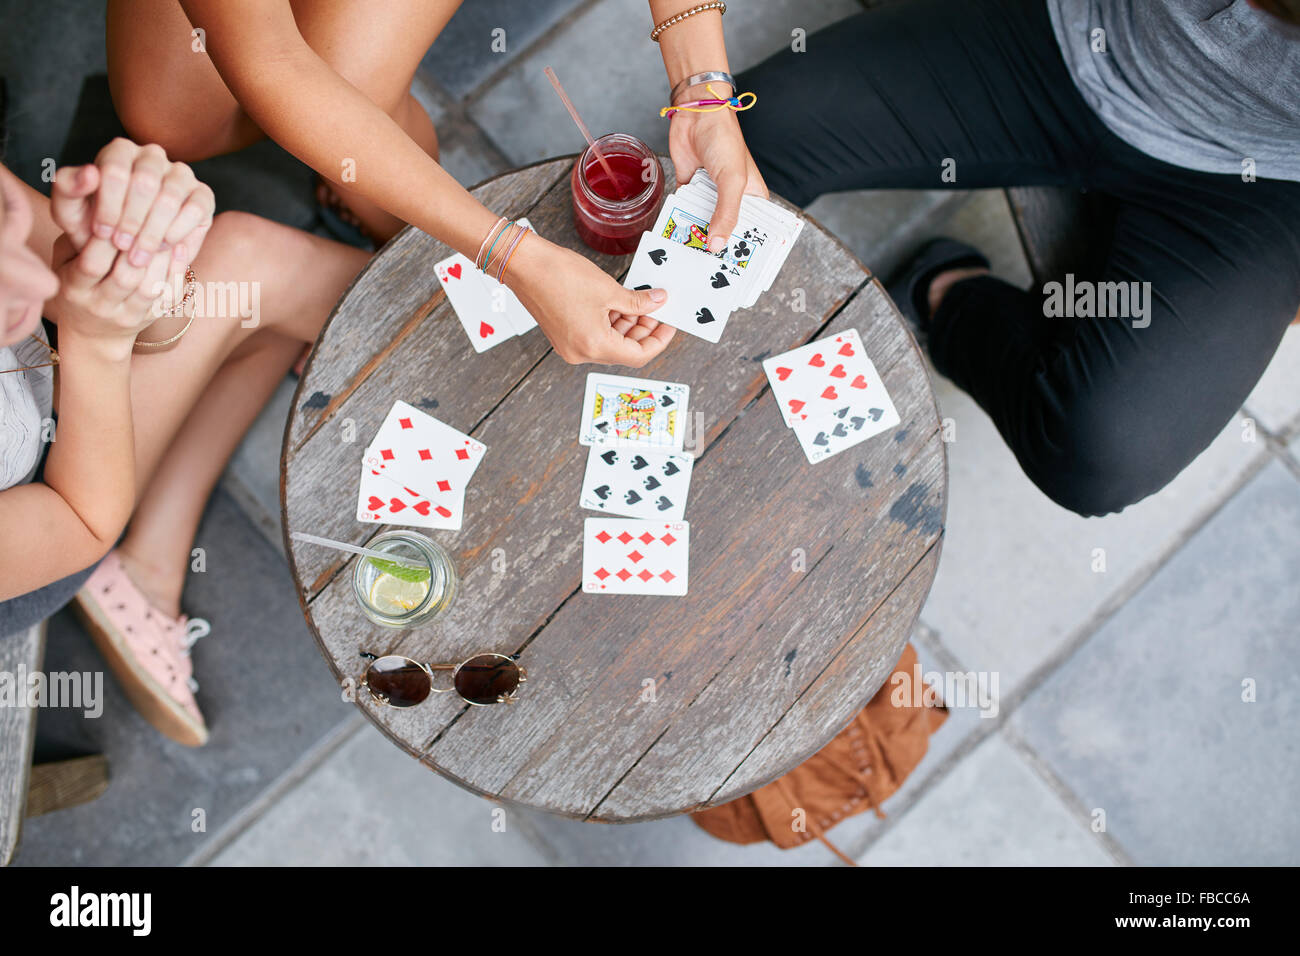 Top view of three young friends playing cards at cafe. Young people playing card game at coffee shop. - Stock Image